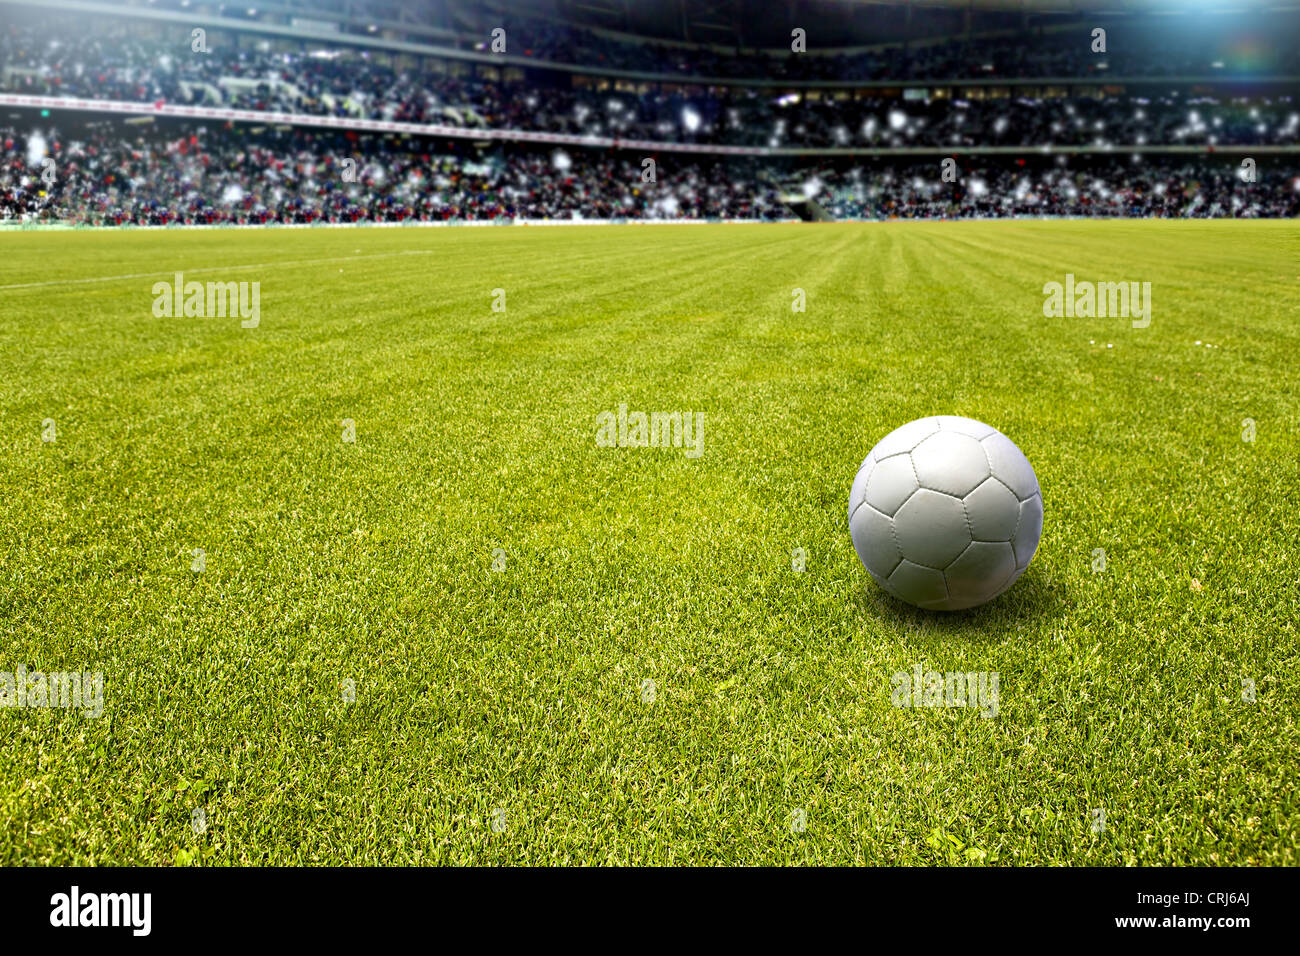 close-up shut of a soccer field surface - Stock Image